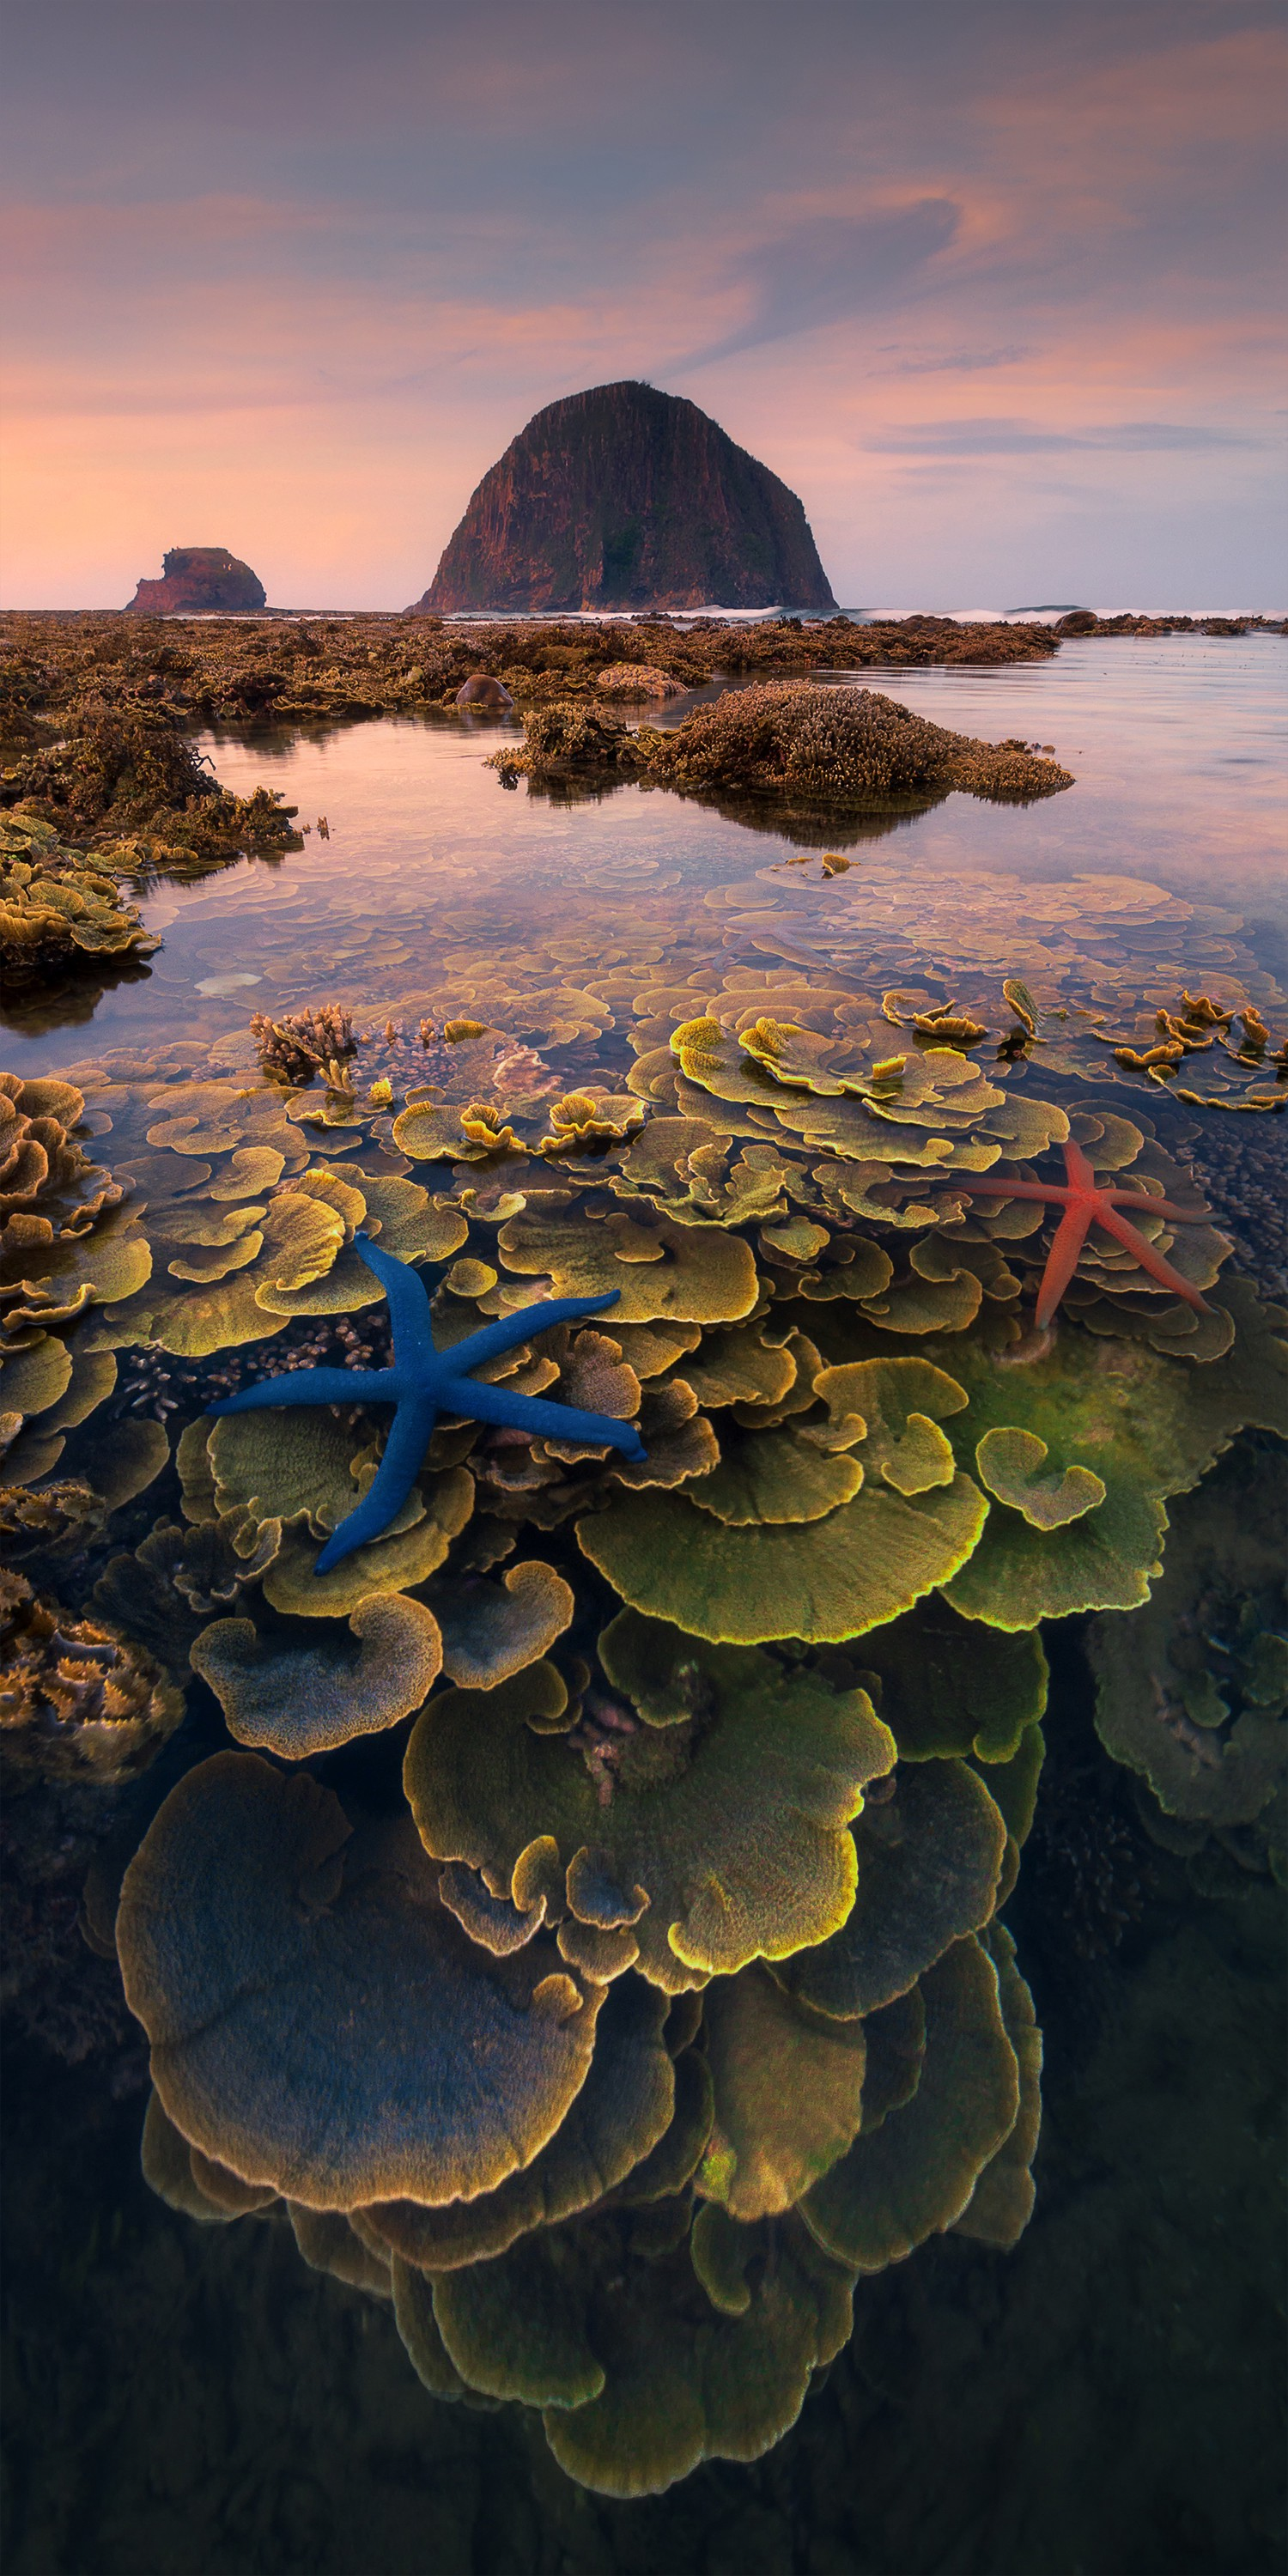 Big, beautiful plants growing in crystal clear water, dotted with bright blue and orange starfish near the surface